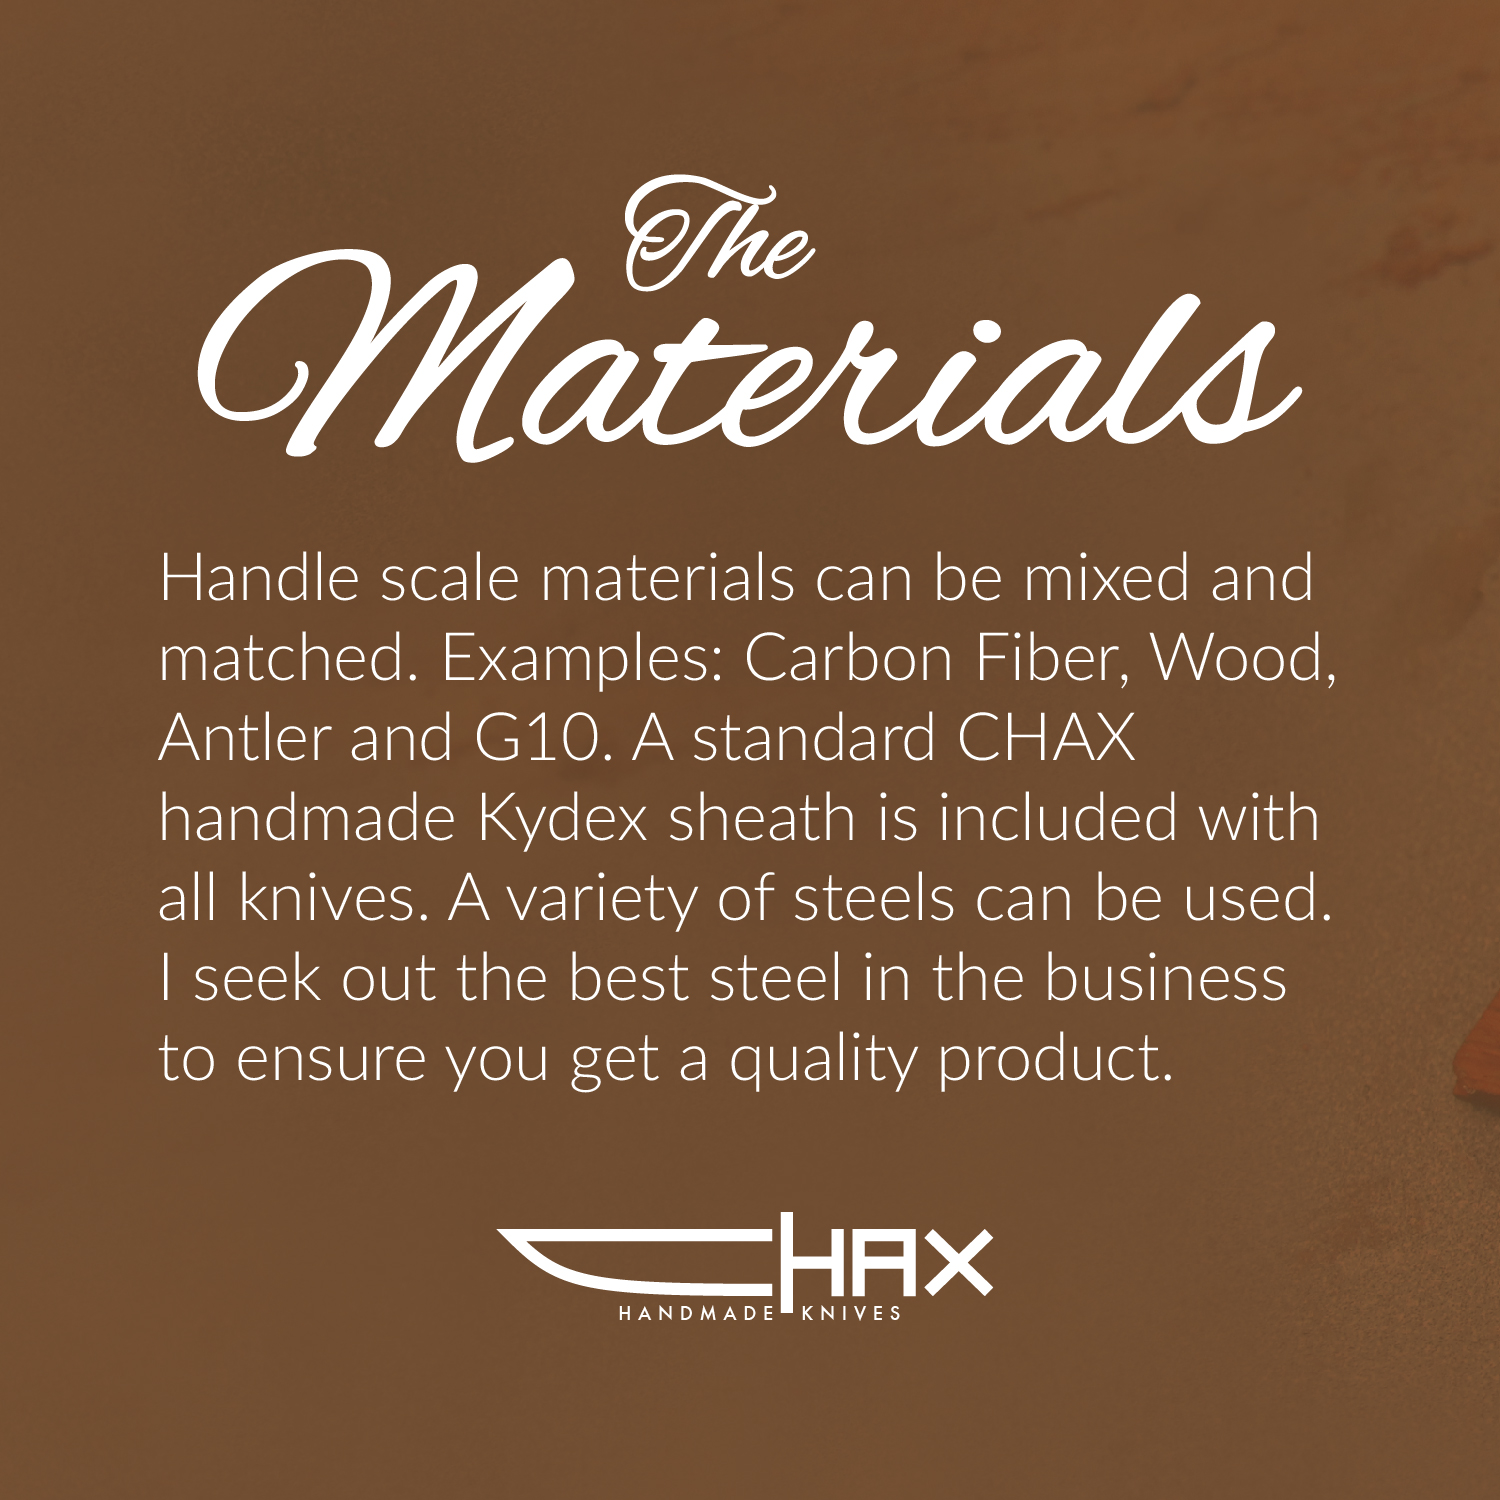 Materials Description